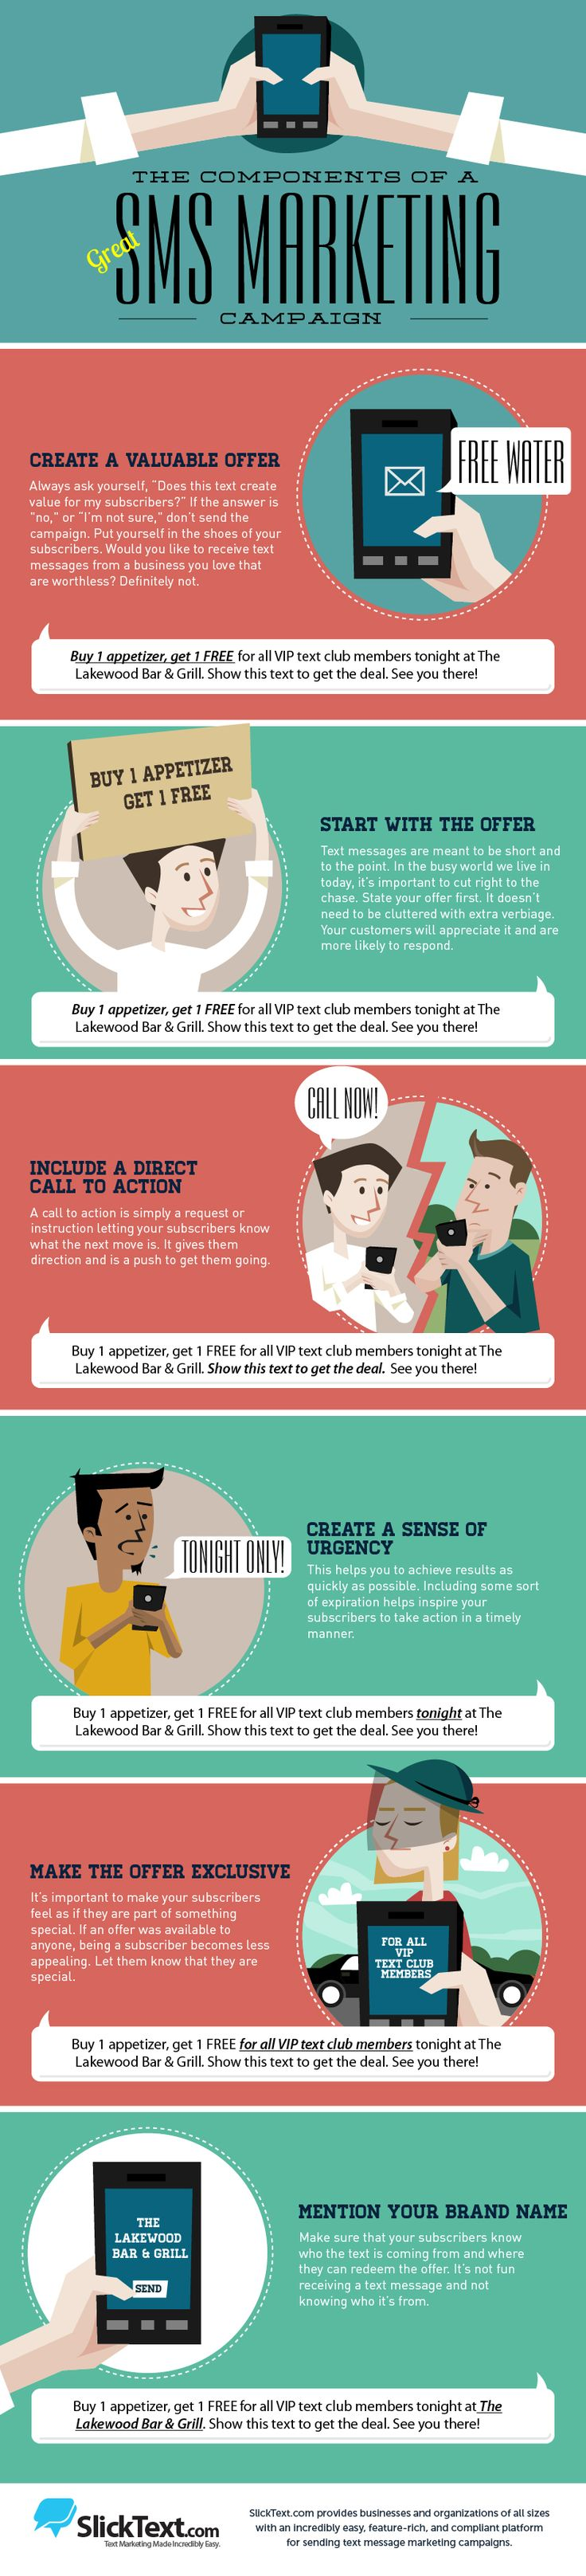 How to Build a Great SMS Marketing Campaign (Infographic)